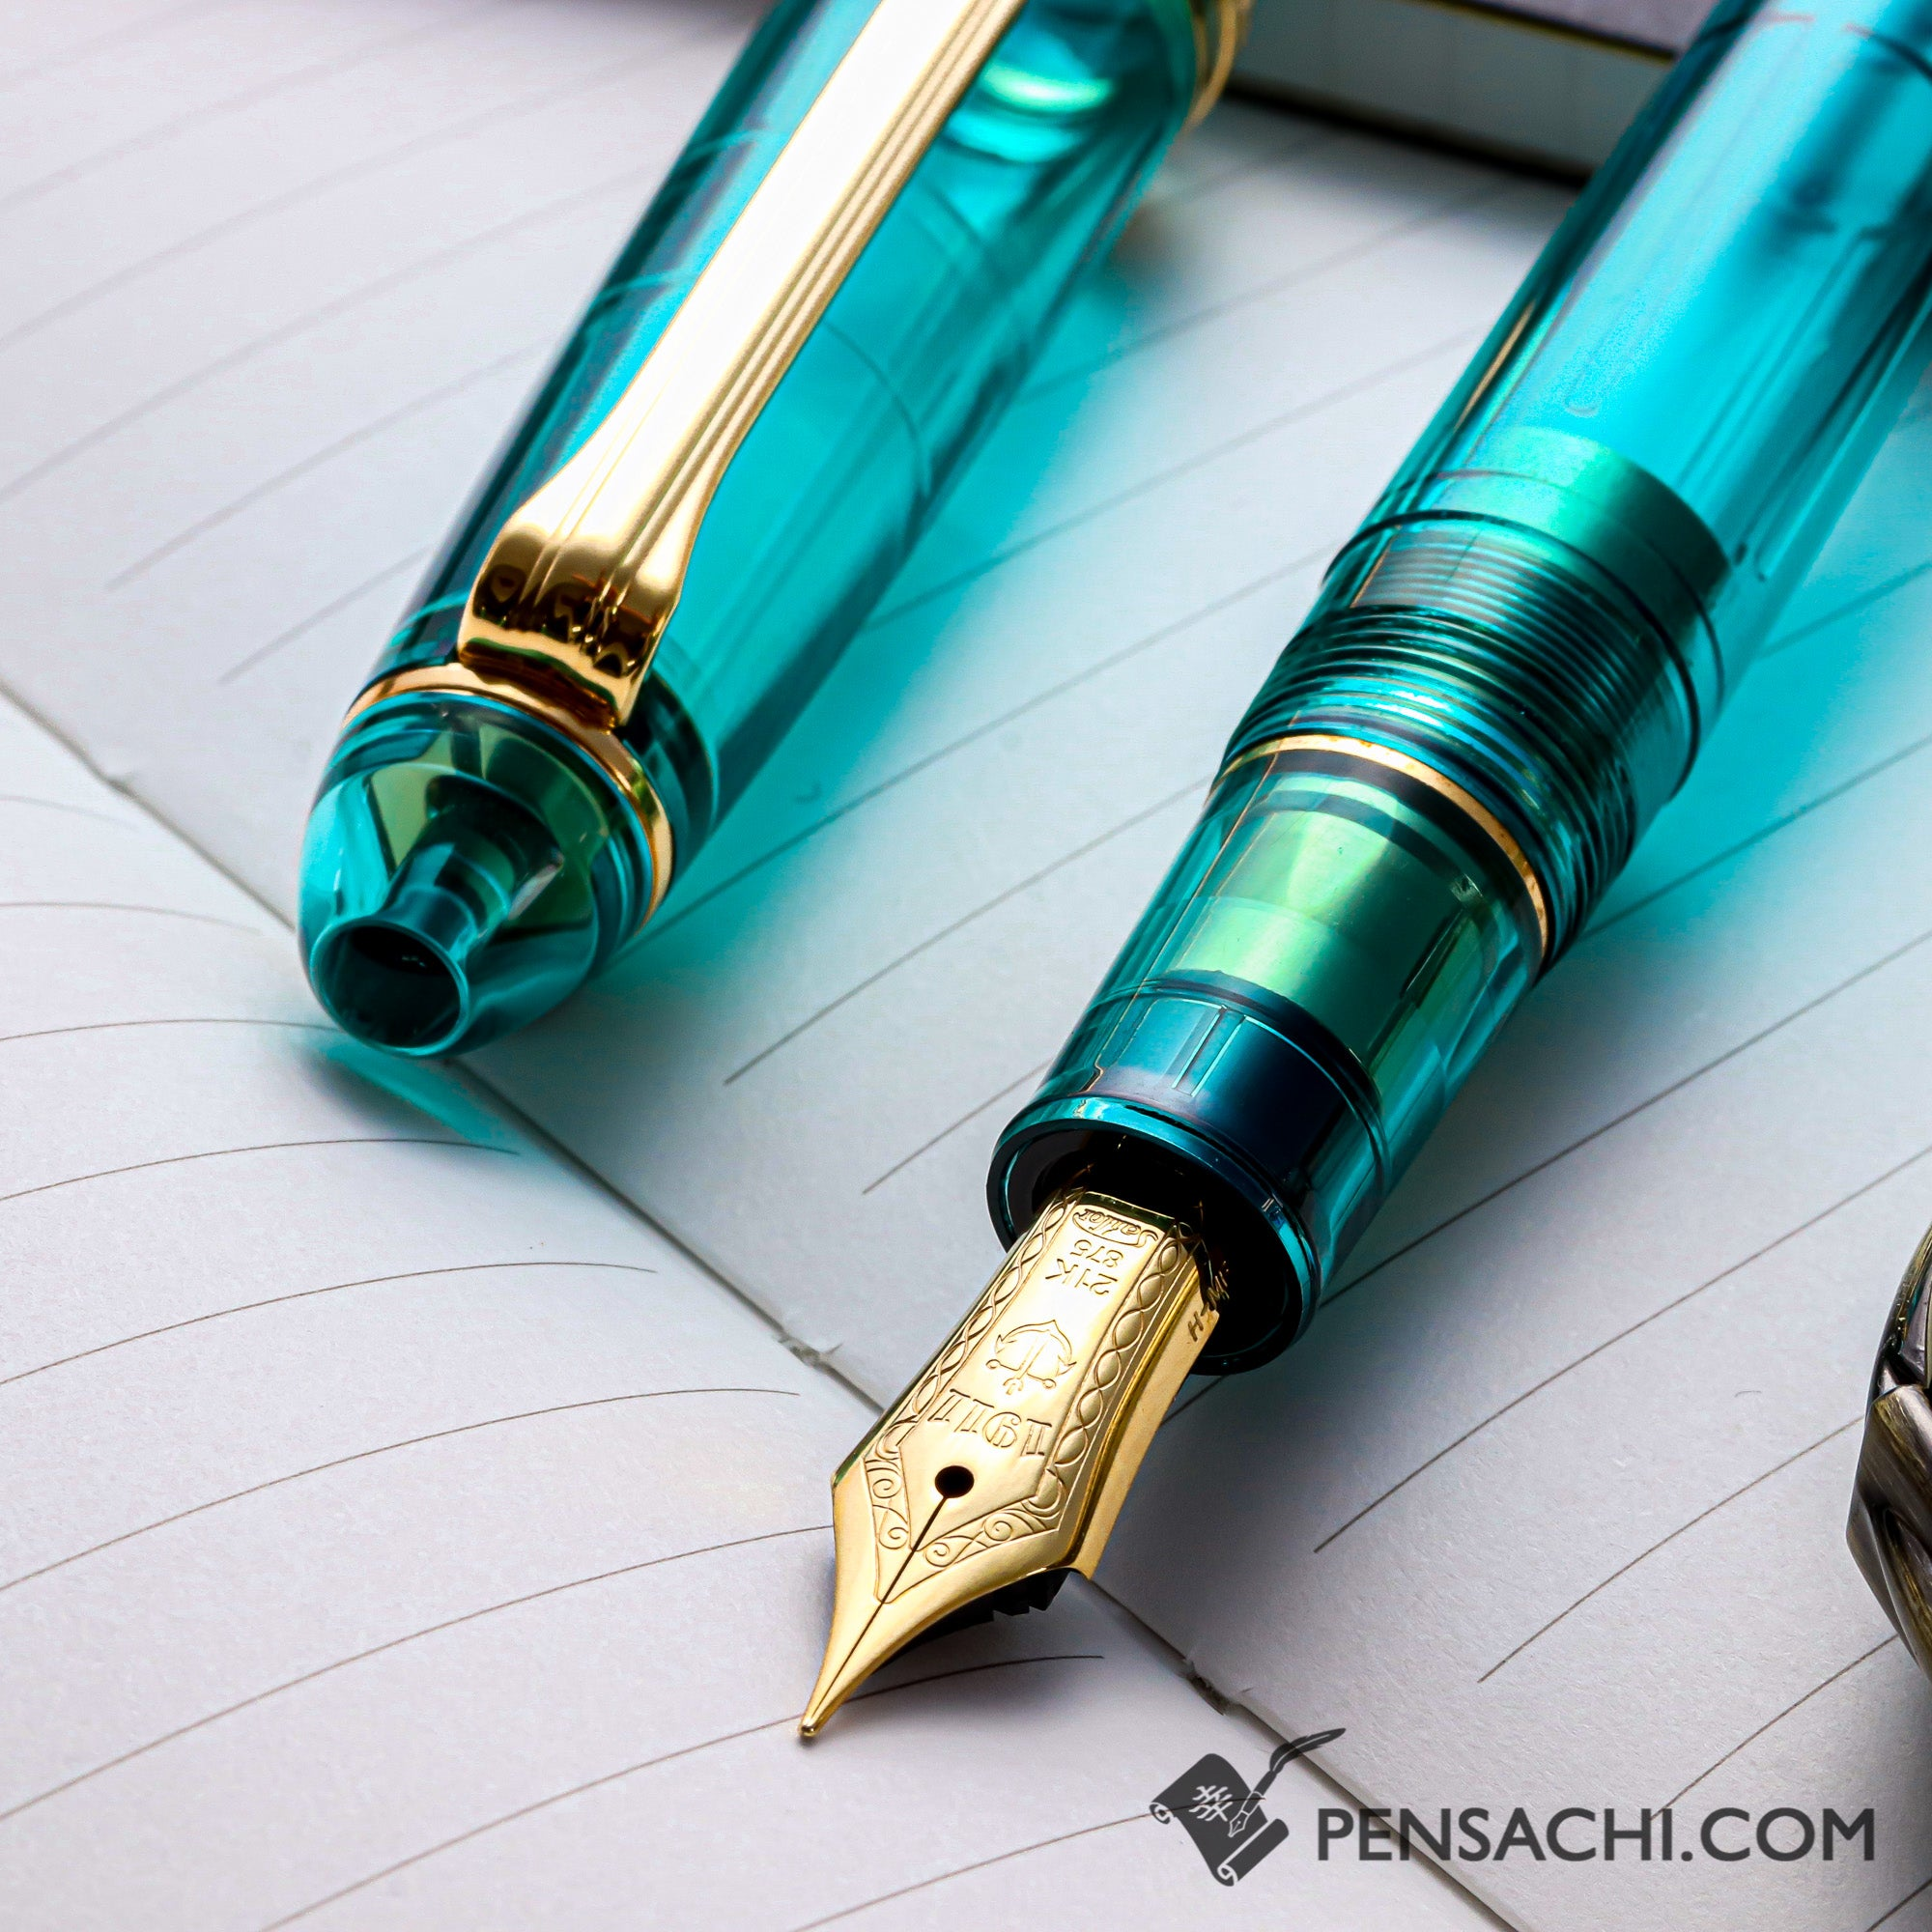 SAILOR Limited Edition Pro Gear Classic Demonstrator Fountain Pen - Teal Green - PenSachi Japanese Limited Fountain Pen